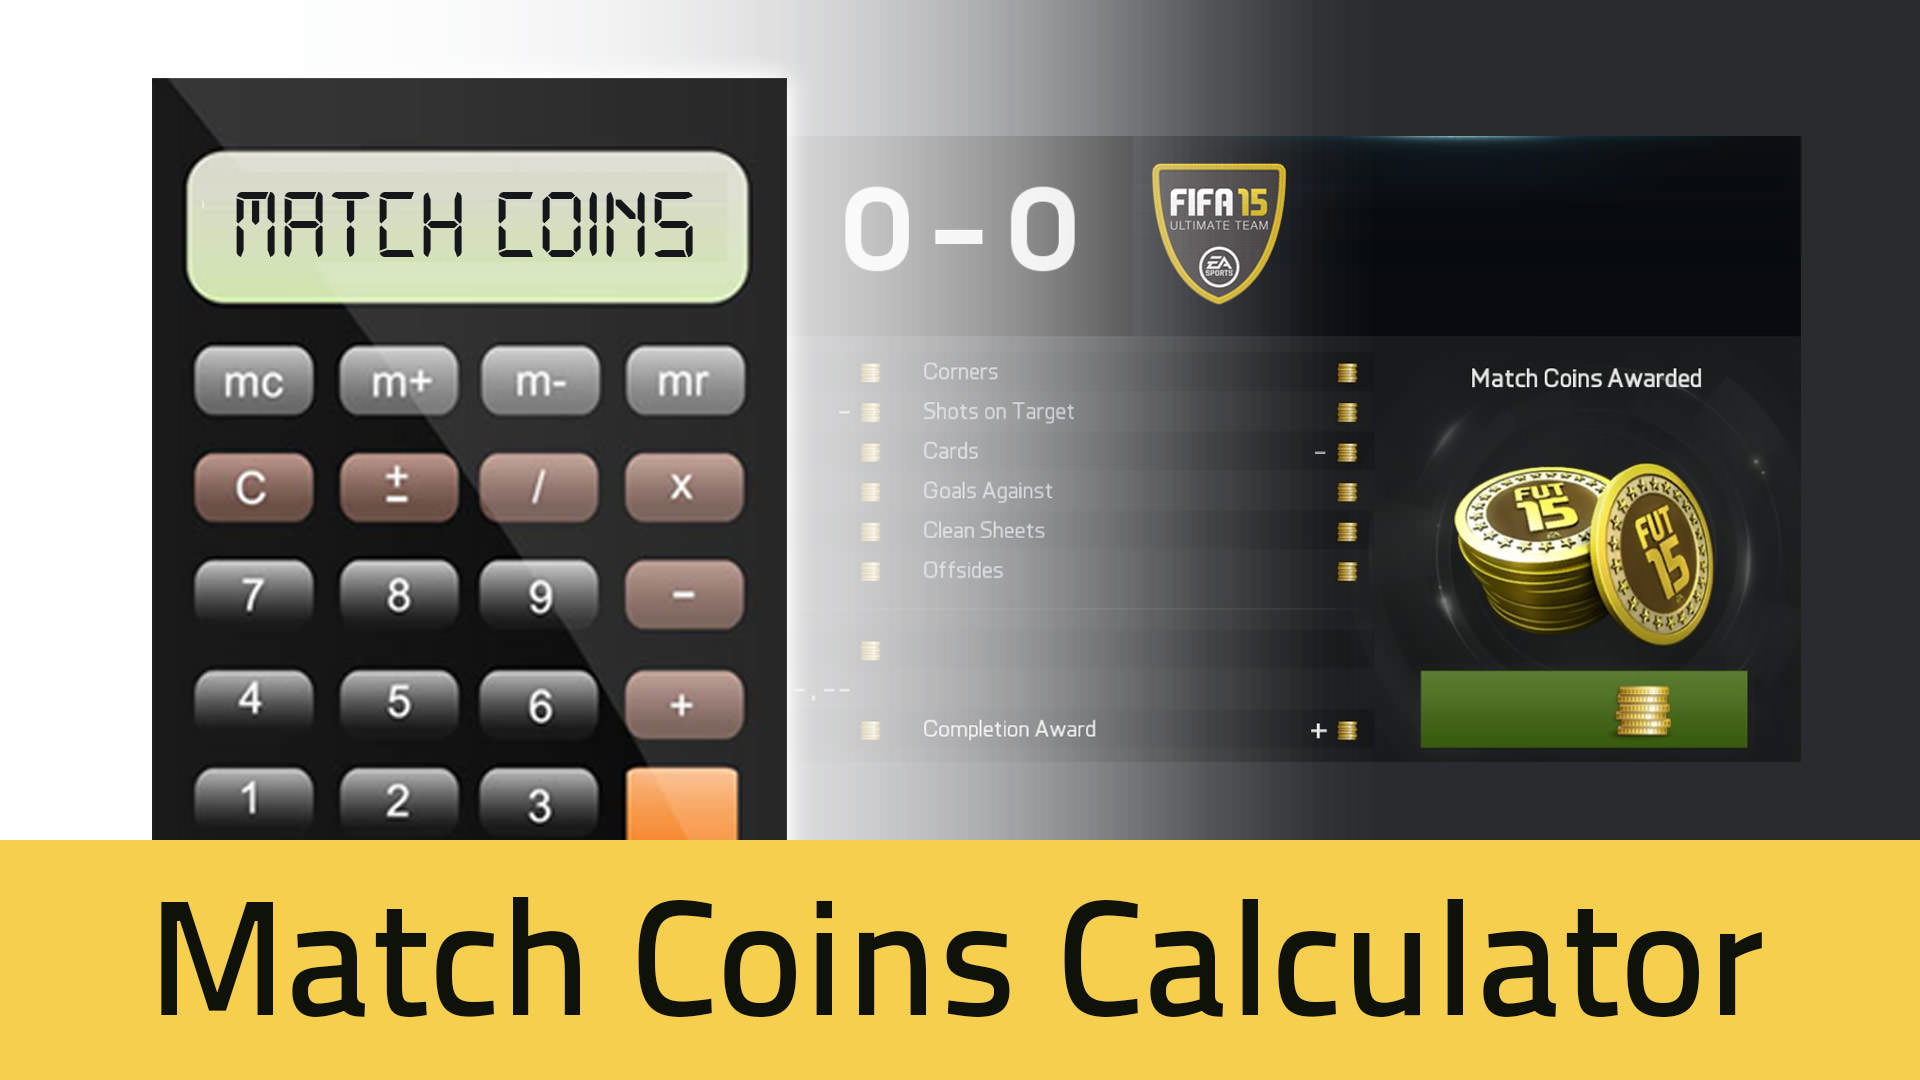 FUT 15 Match Coins Calculator